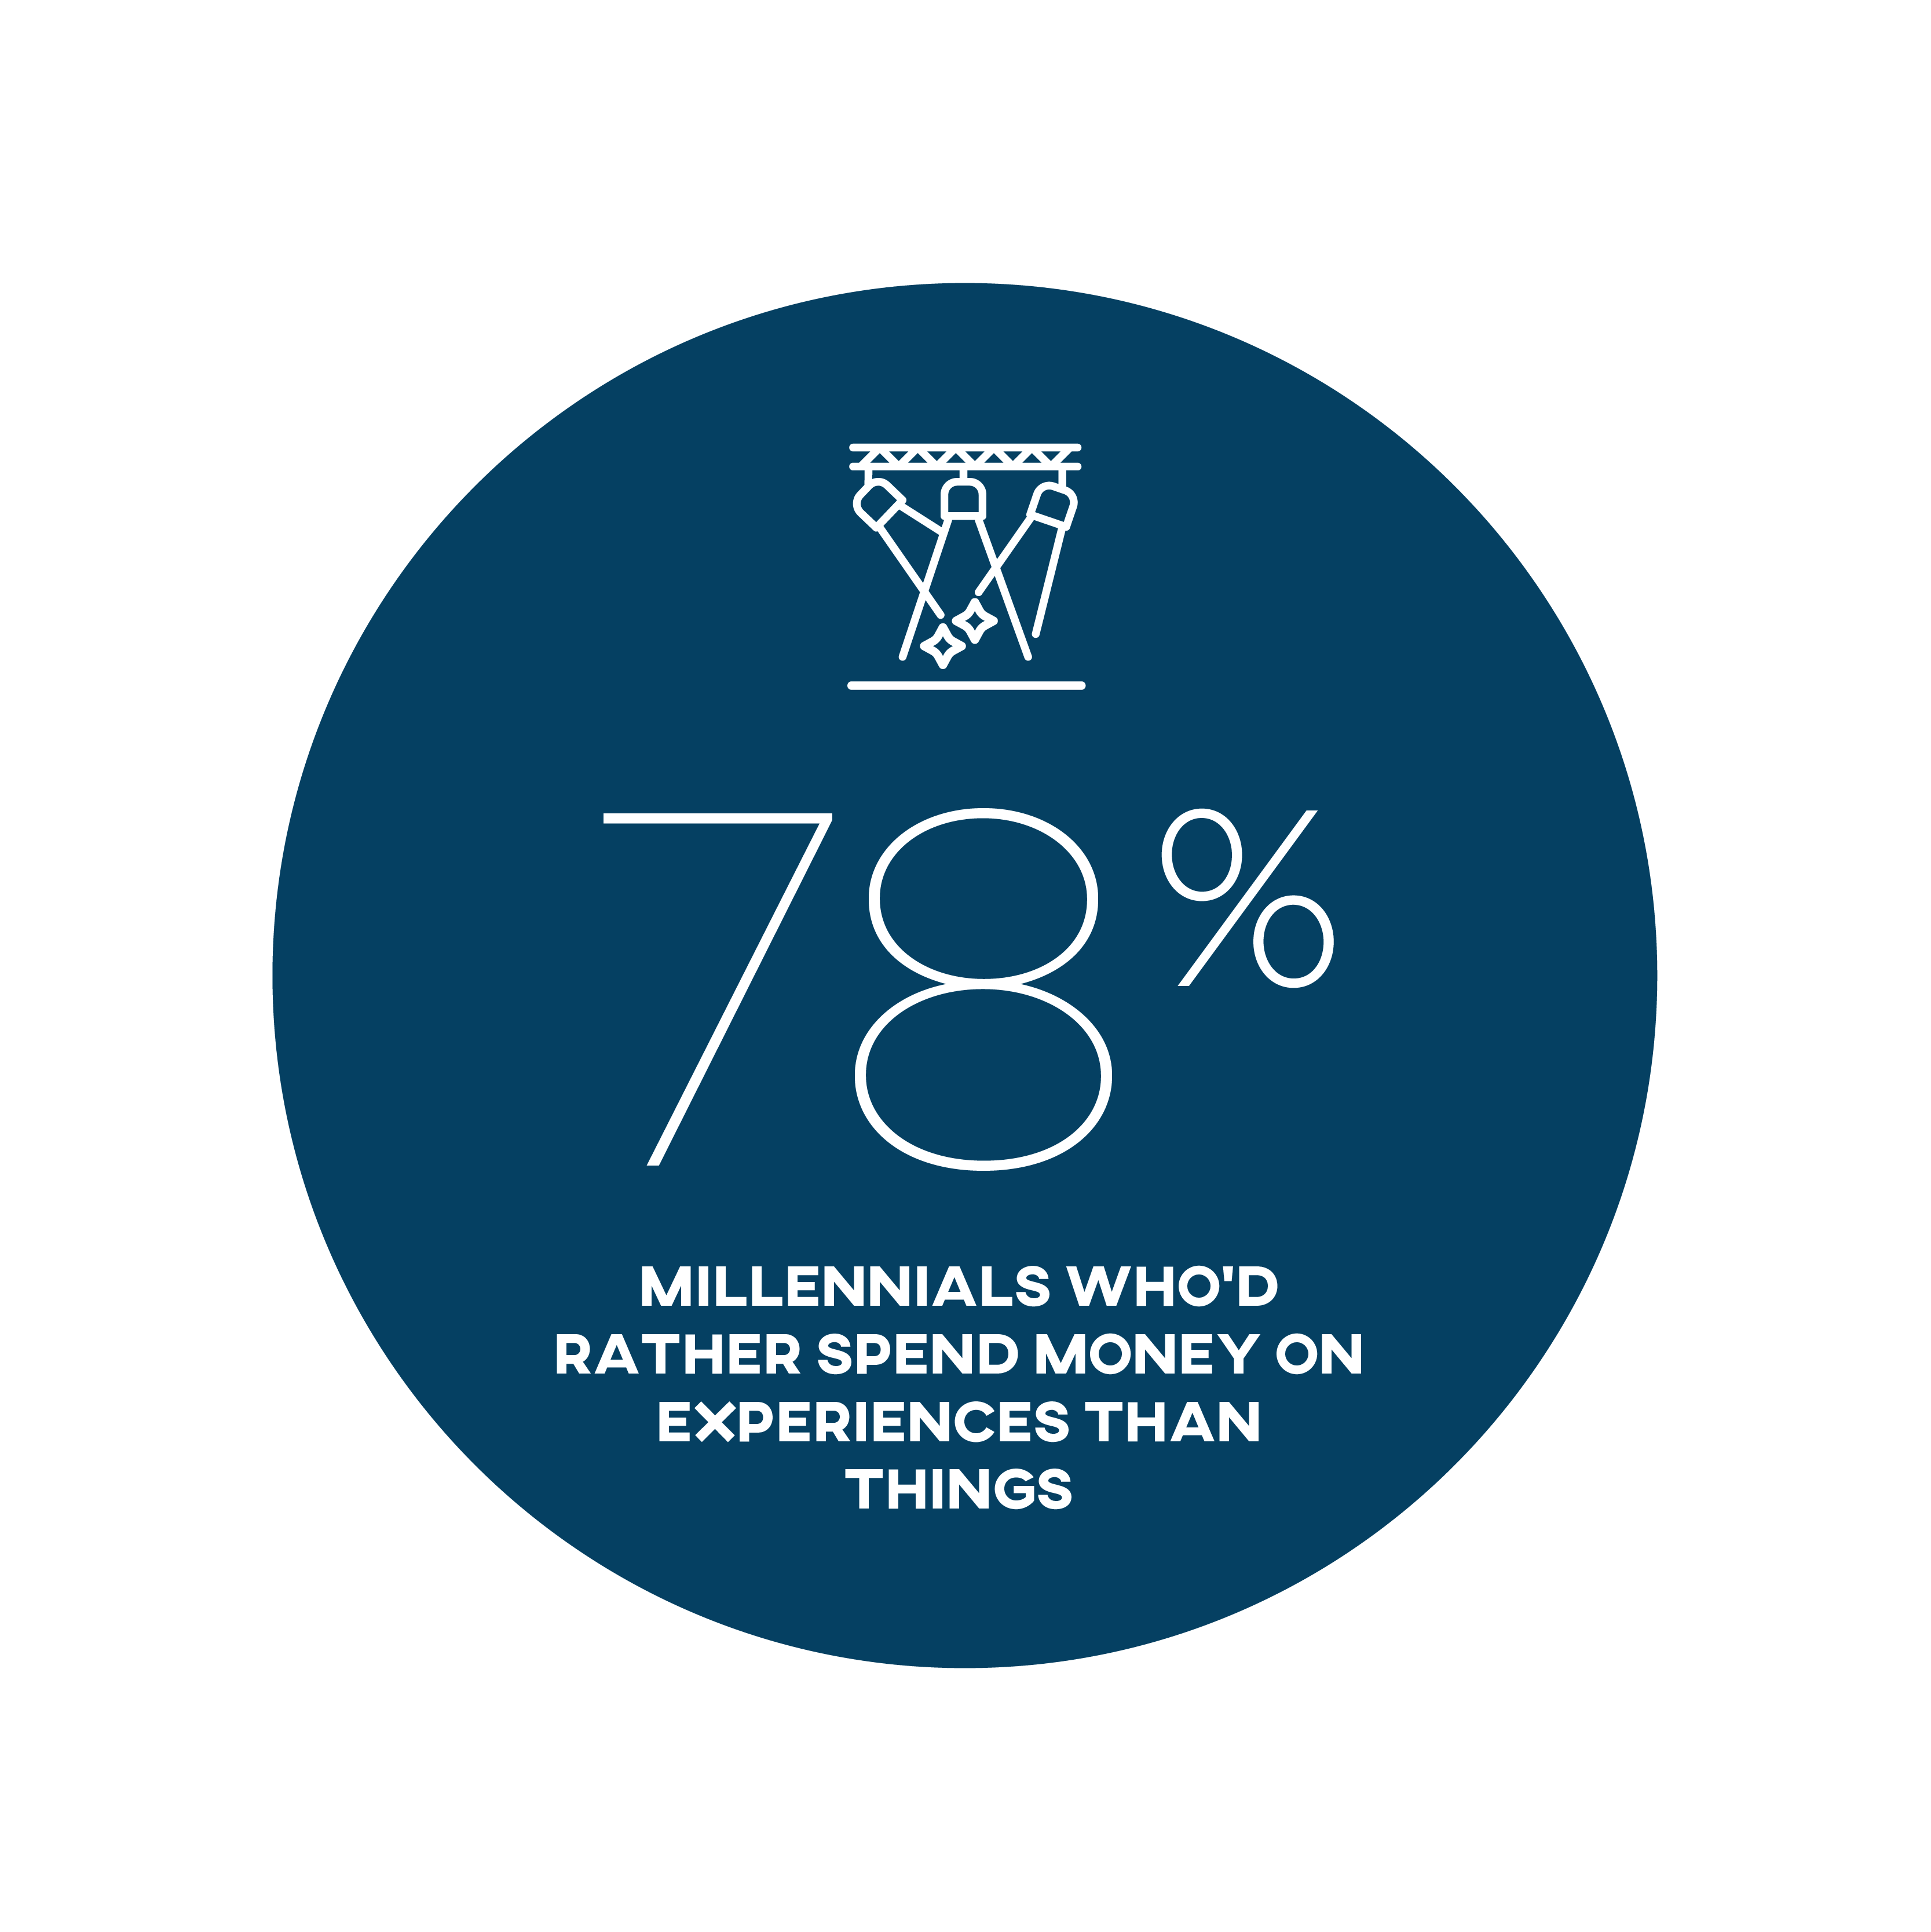 78% millennials who'd rather spend money on experiences than things